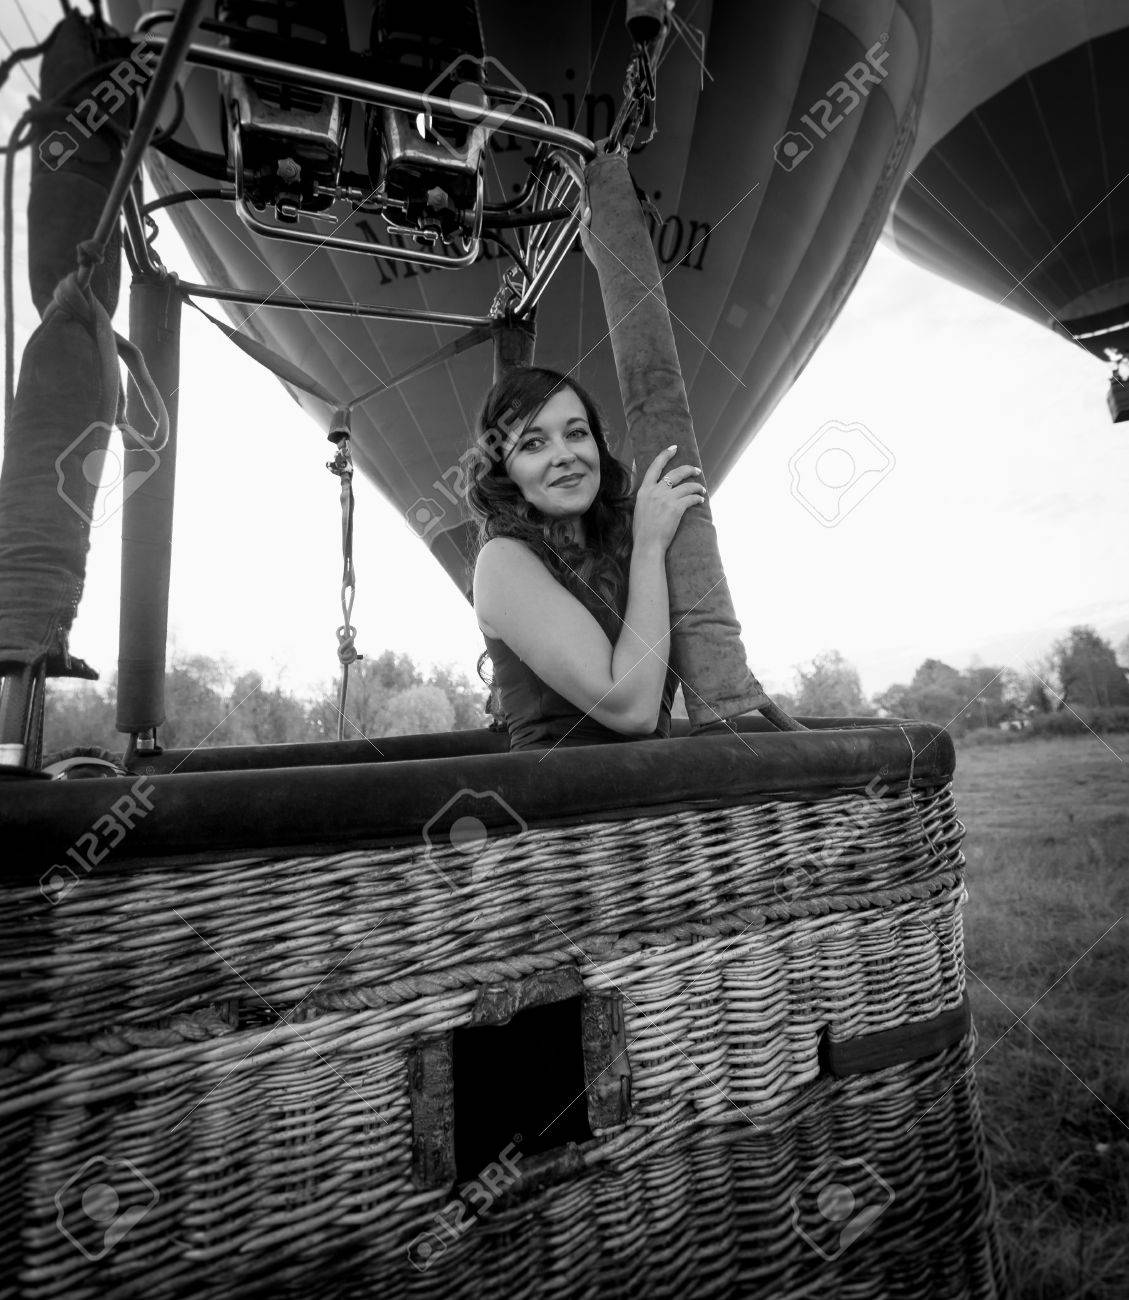 Black and white portrait of beautiful sexy woman posing at hot air balloon basket stock photo